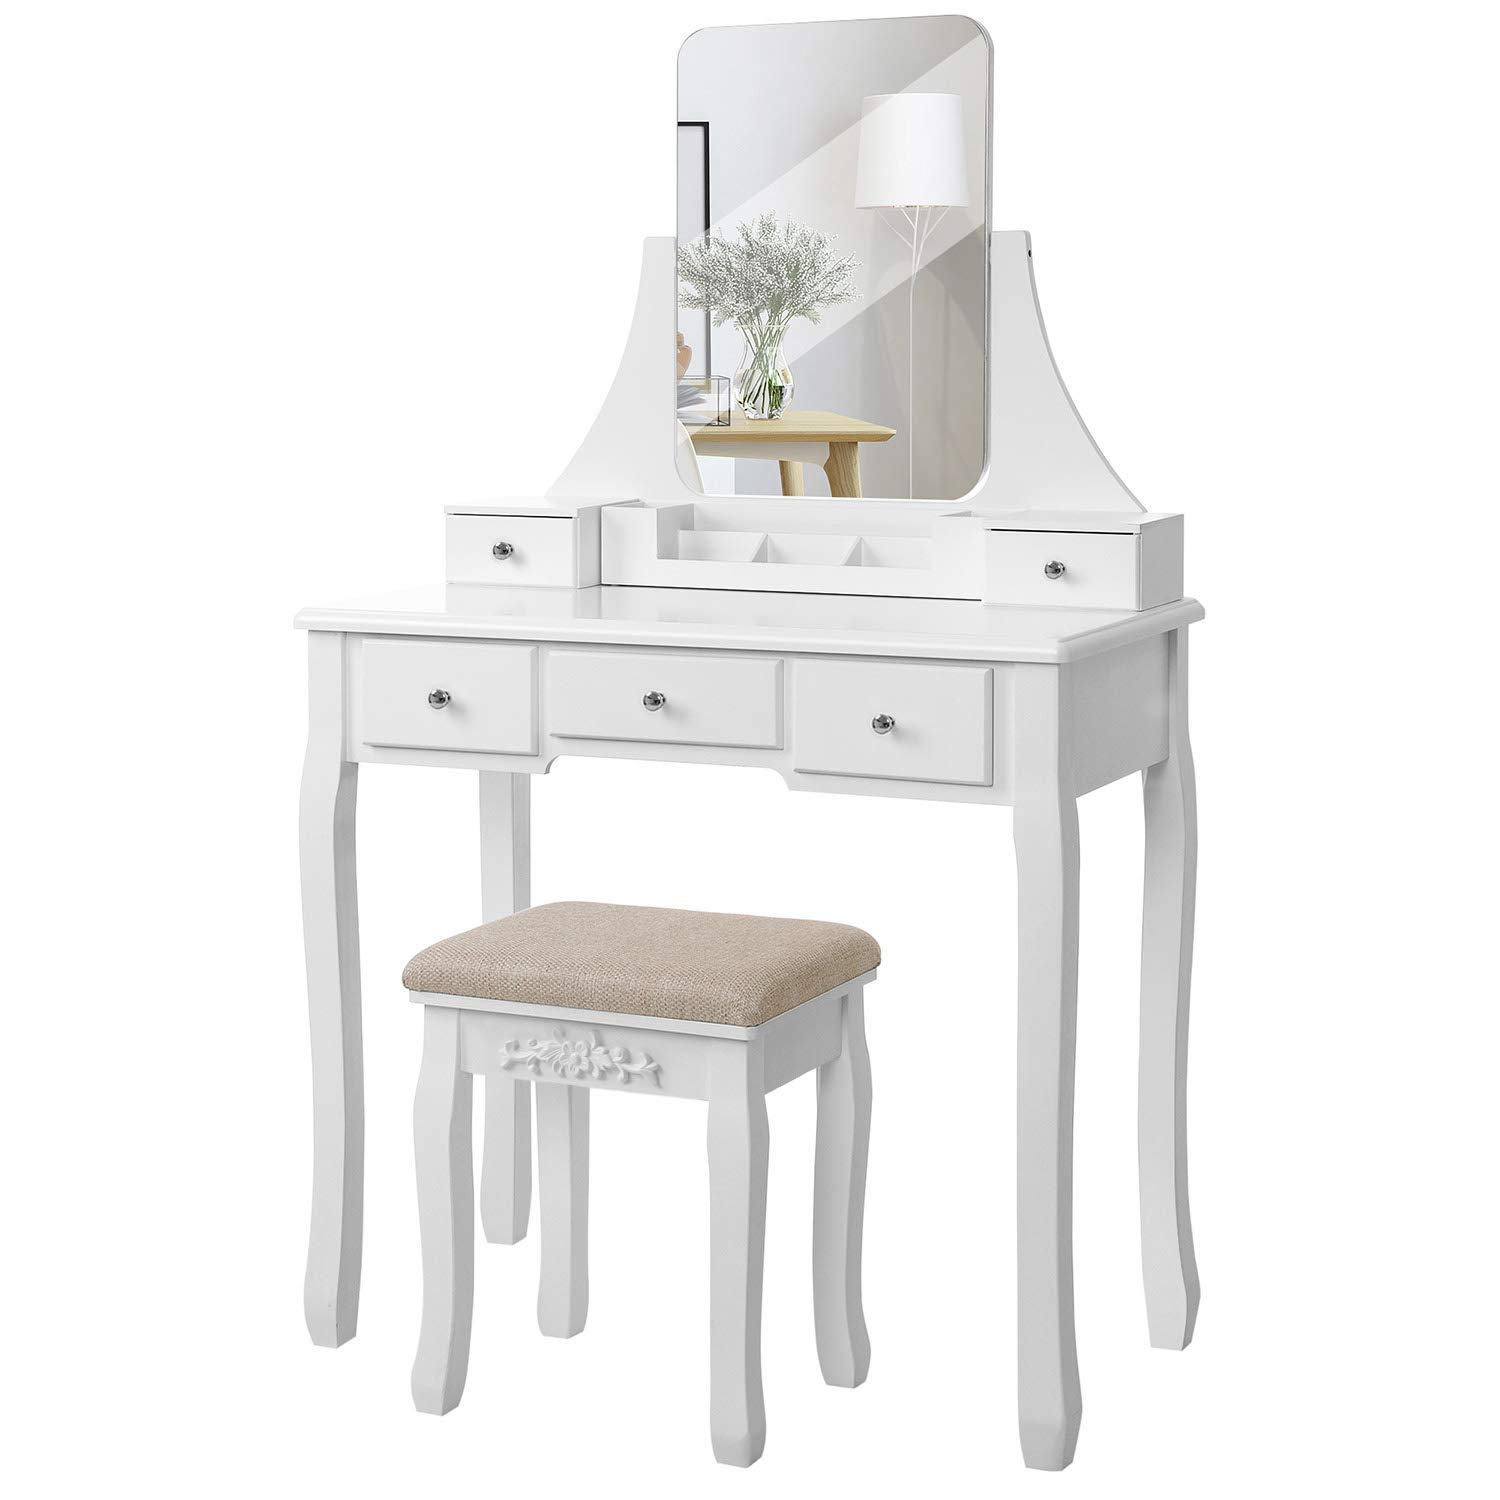 VASAGLE Vanity Table Set with Large Frameless Mirror, Makeup Dressing Table Set for Bedroom, Bathroom, 5 Drawers and 1 Removable Storage Box, Cushioned Stool,White URDT25W by VASAGLE